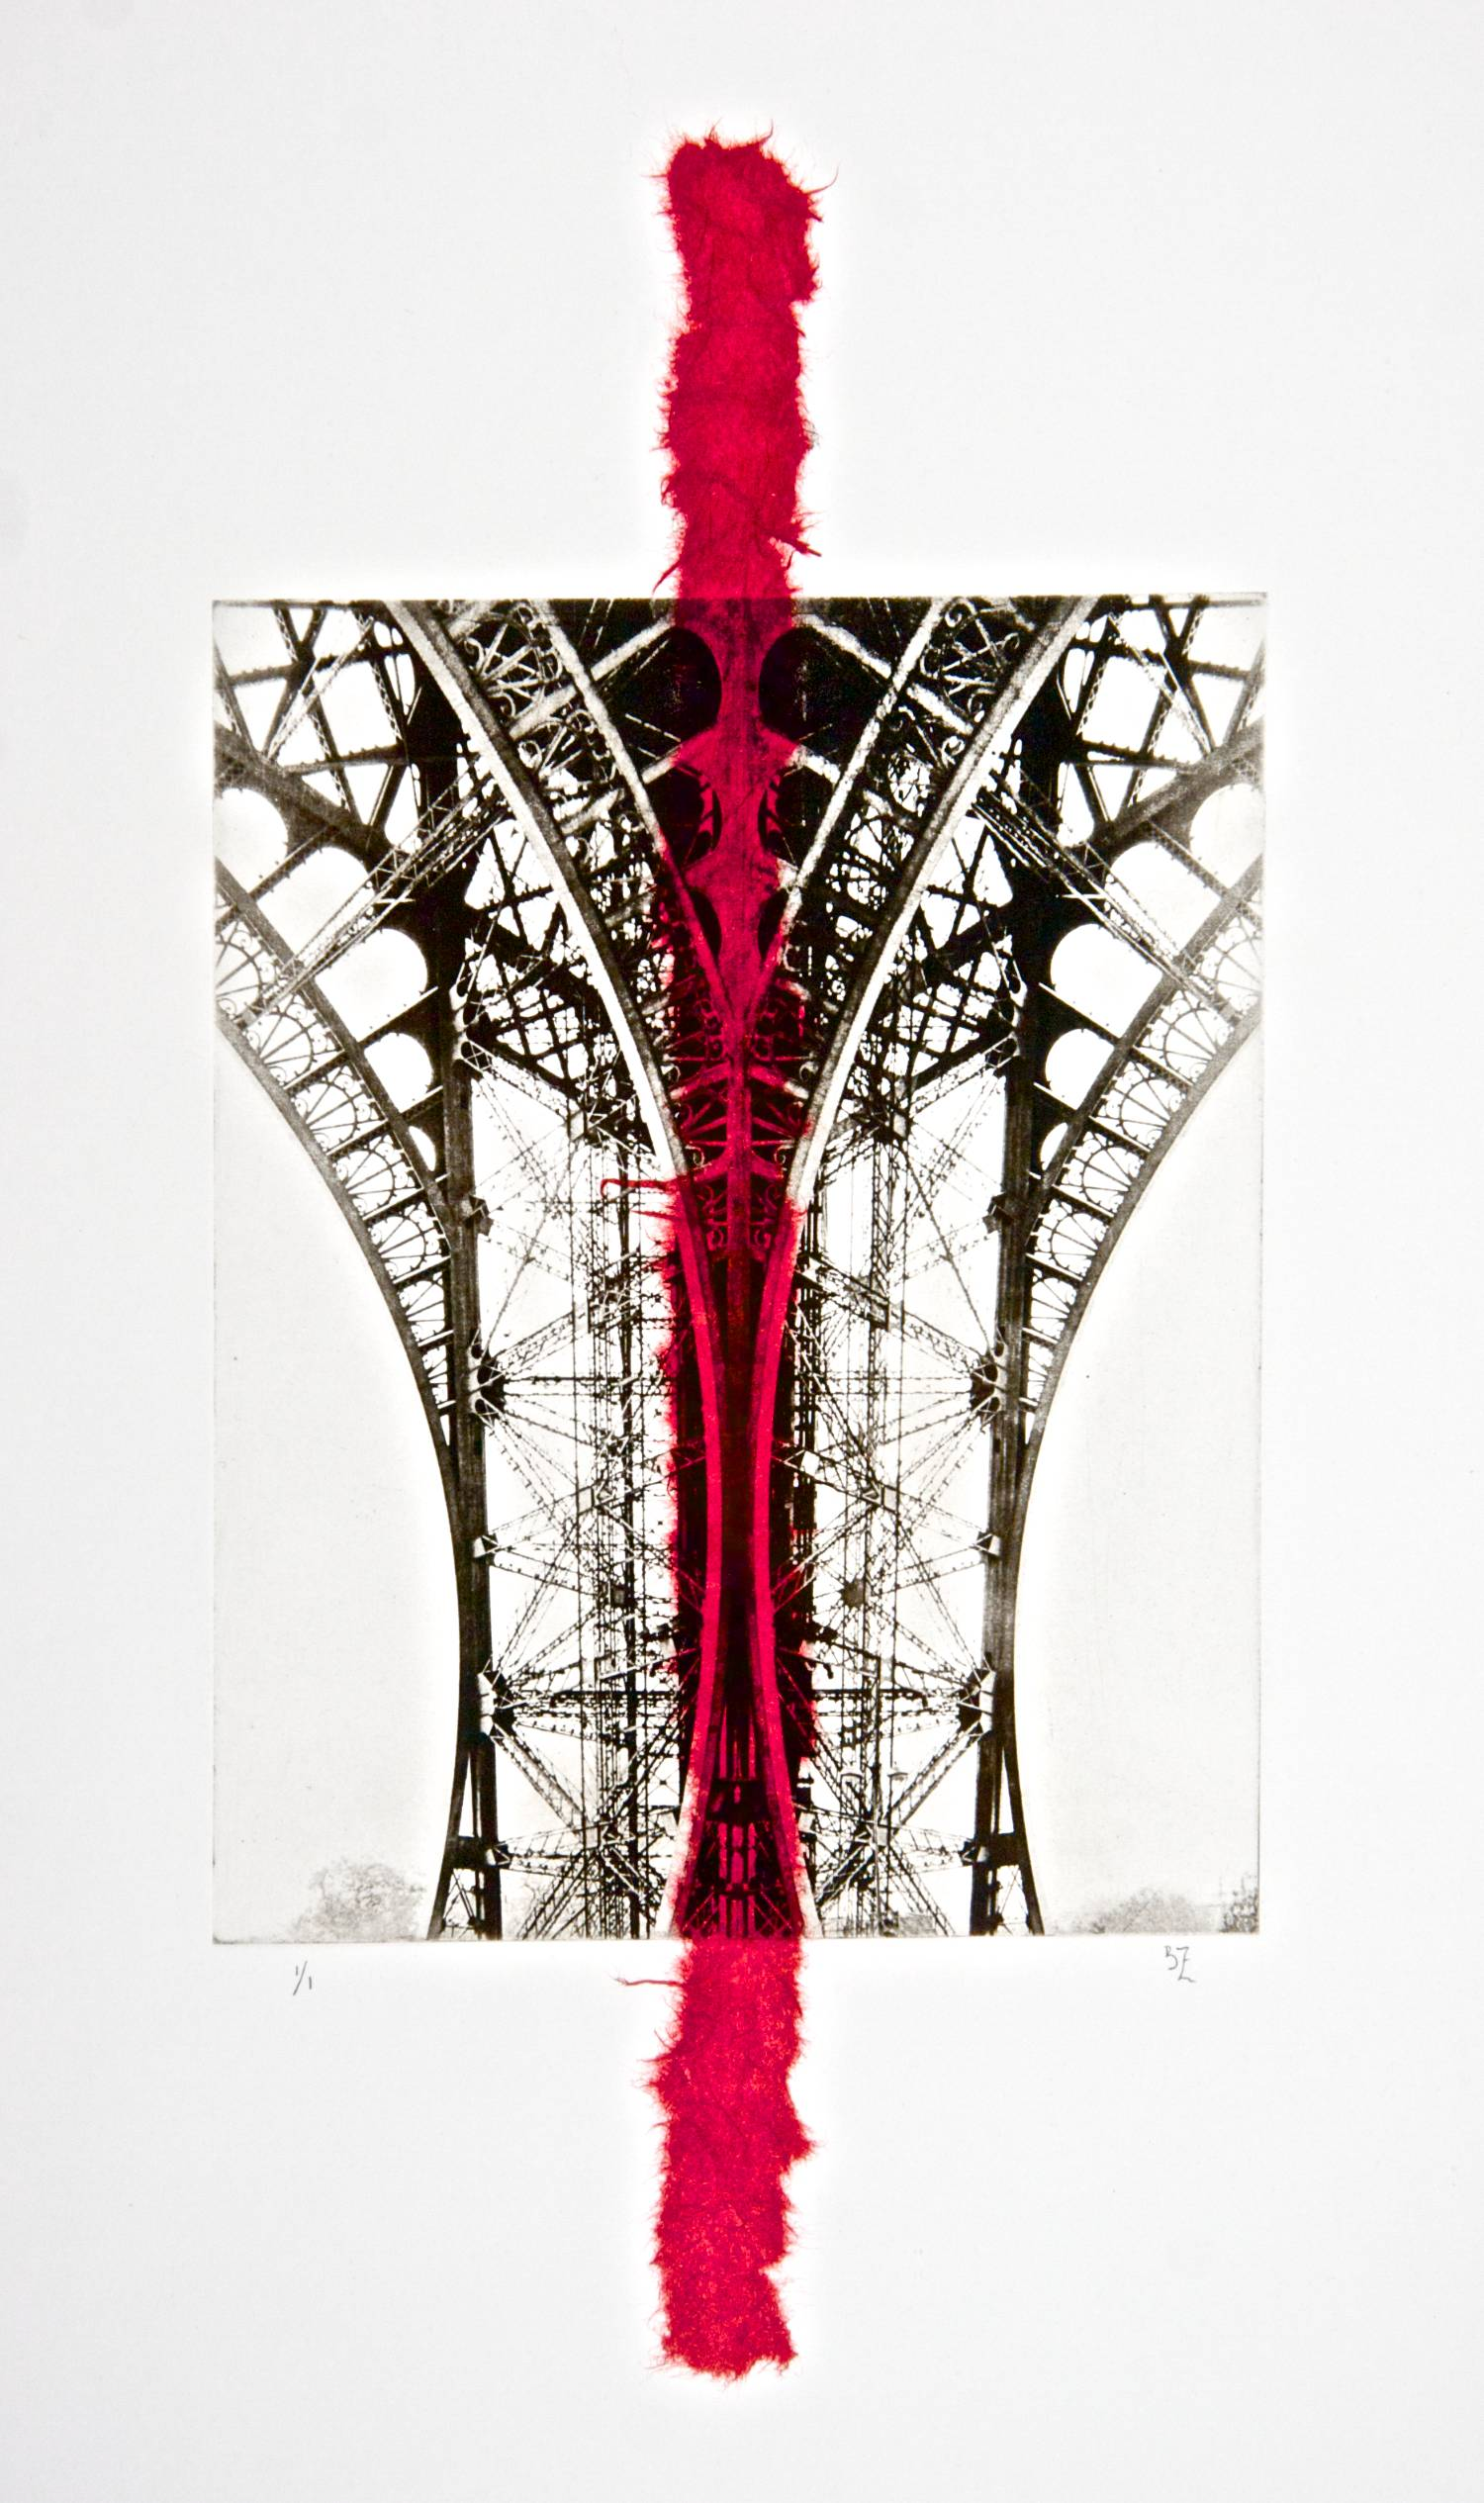 Eiffel chine-collé (red)